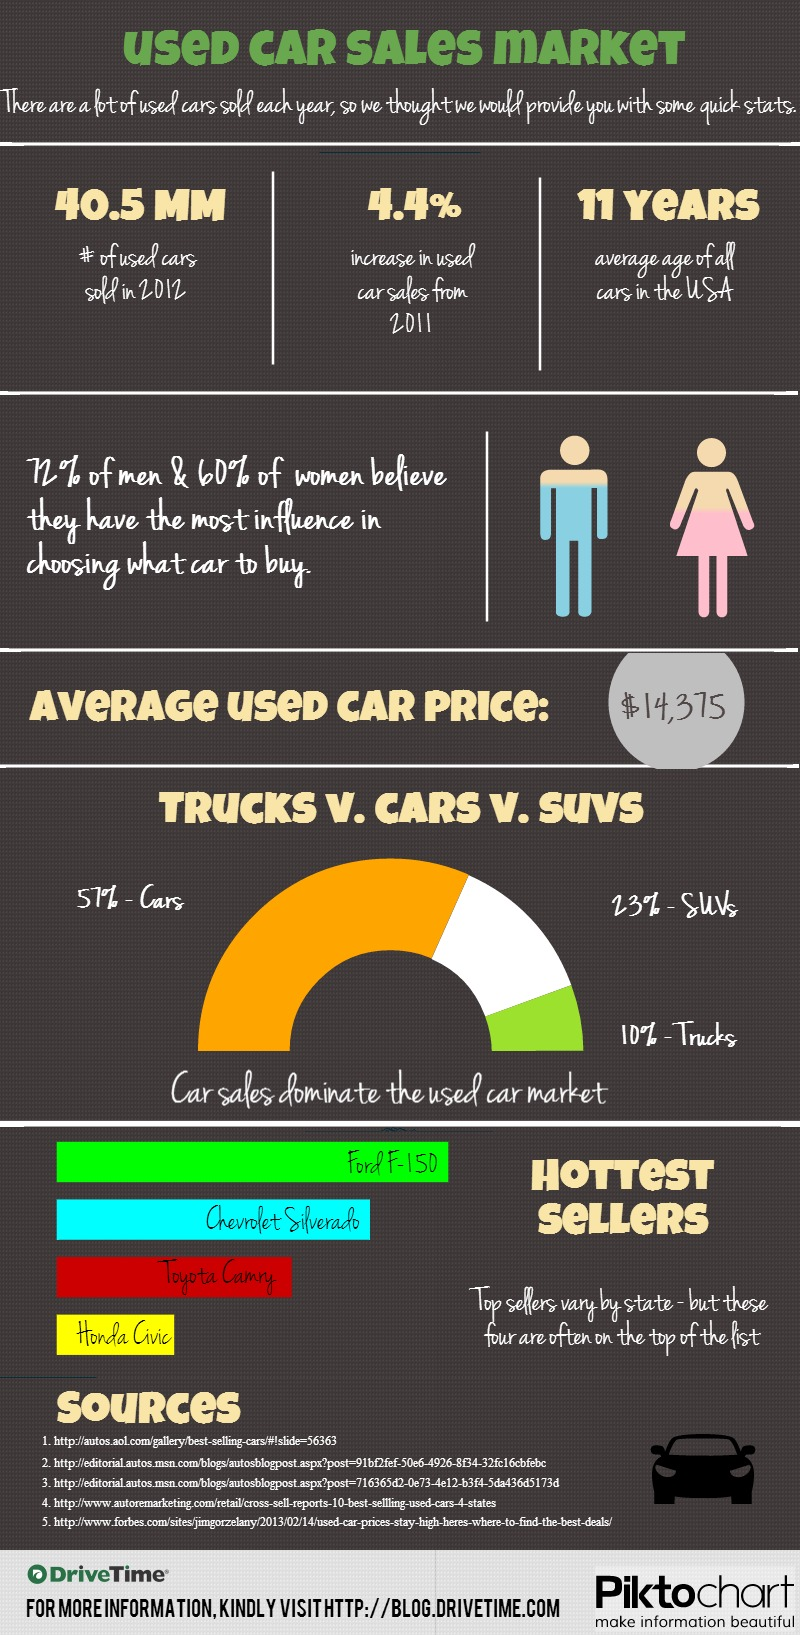 Check Out The 2012 Used Car Sales Market Stats